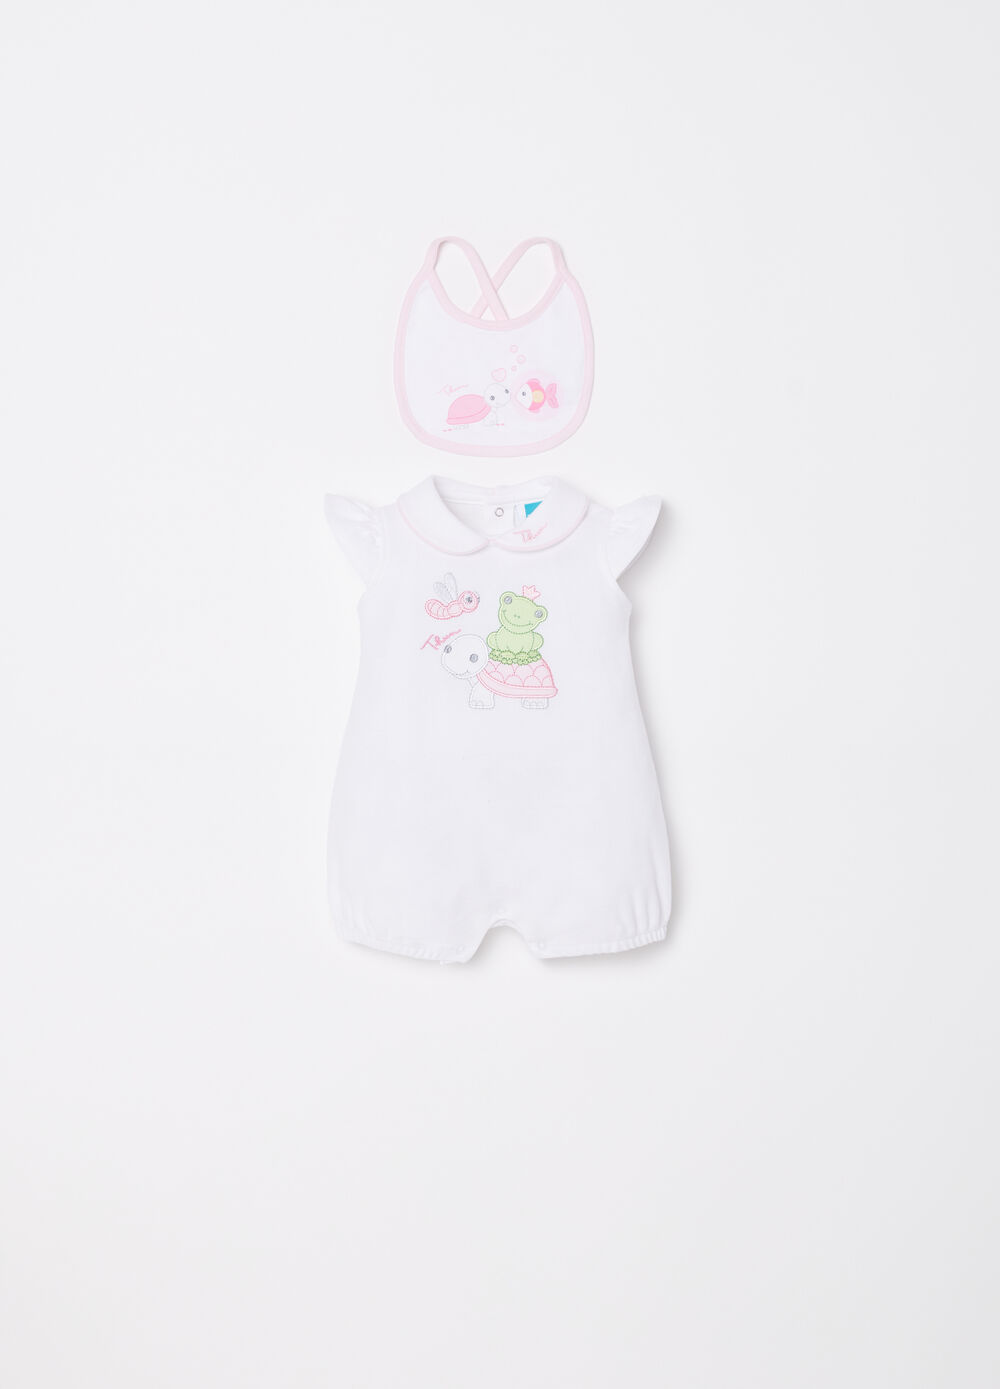 Onesie and bib set with THUN embroidery